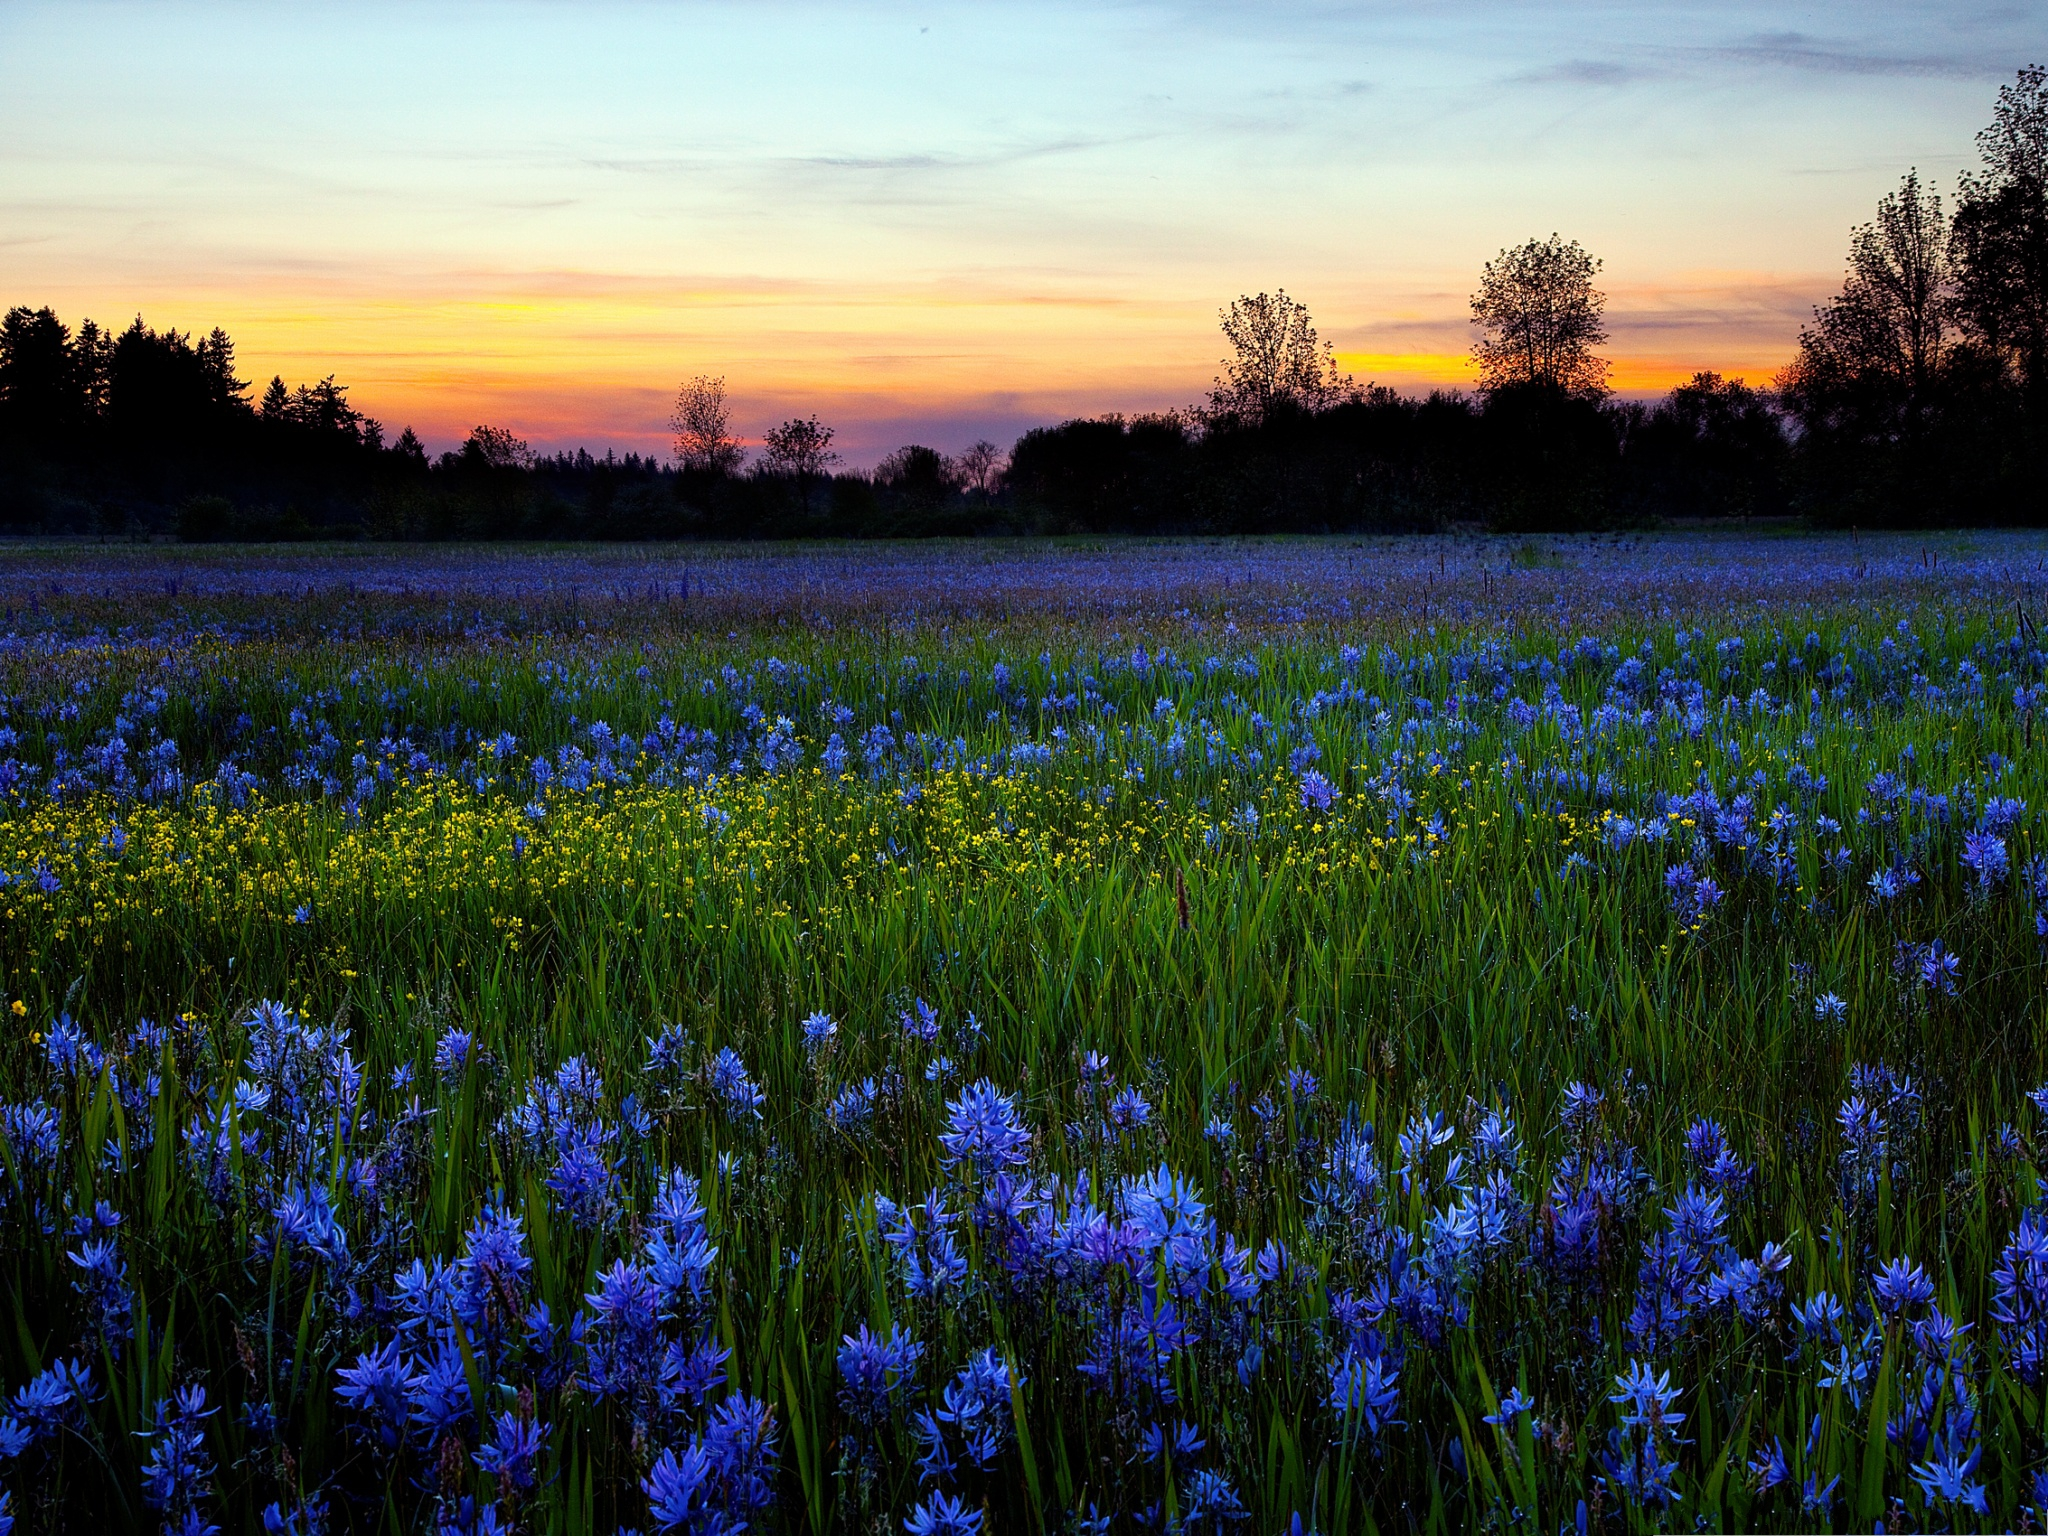 click to free download the wallpaper--Image of Blue Flowers, Tiny Flower in Bloom, Golden Horizon  2048X1536 free wallpaper download